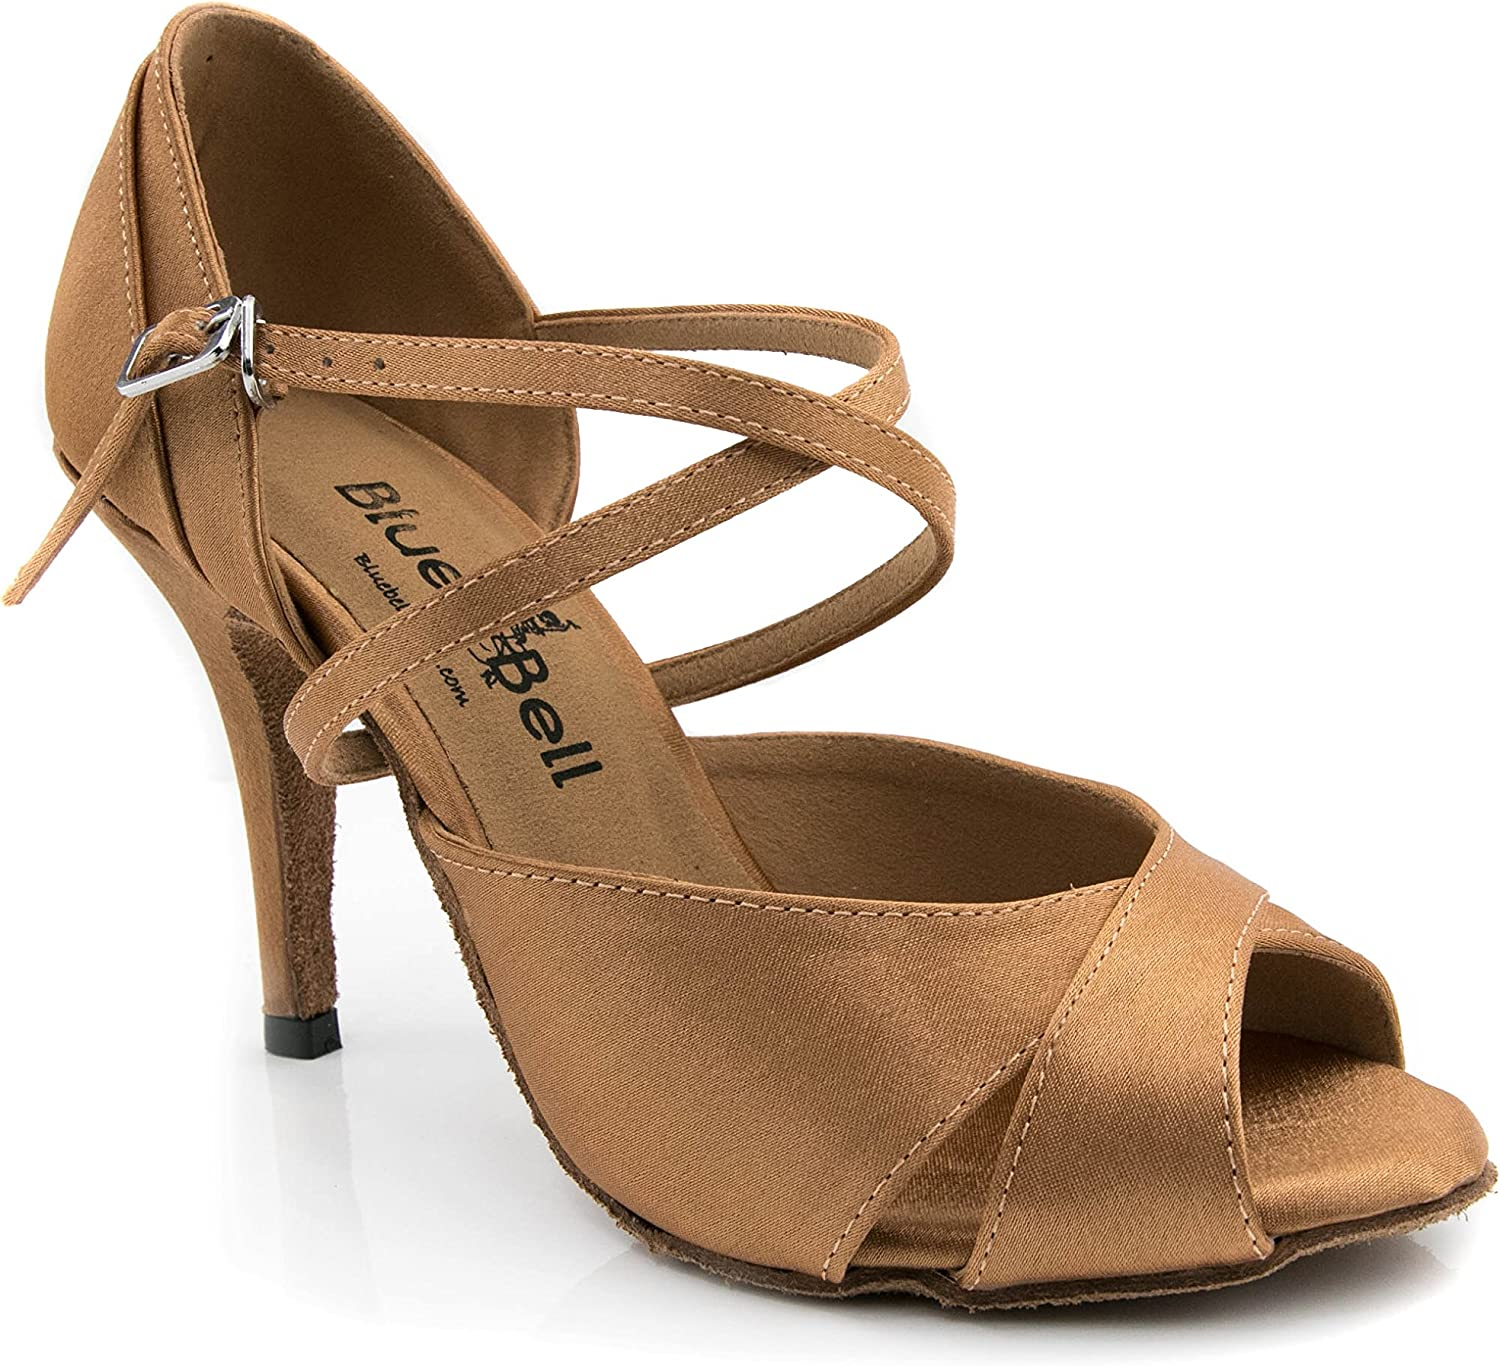 BlueBell Shoes Handmade Women's Ballroom Salsa Wedding Competition Dance Shoes Style: Petra 3.5